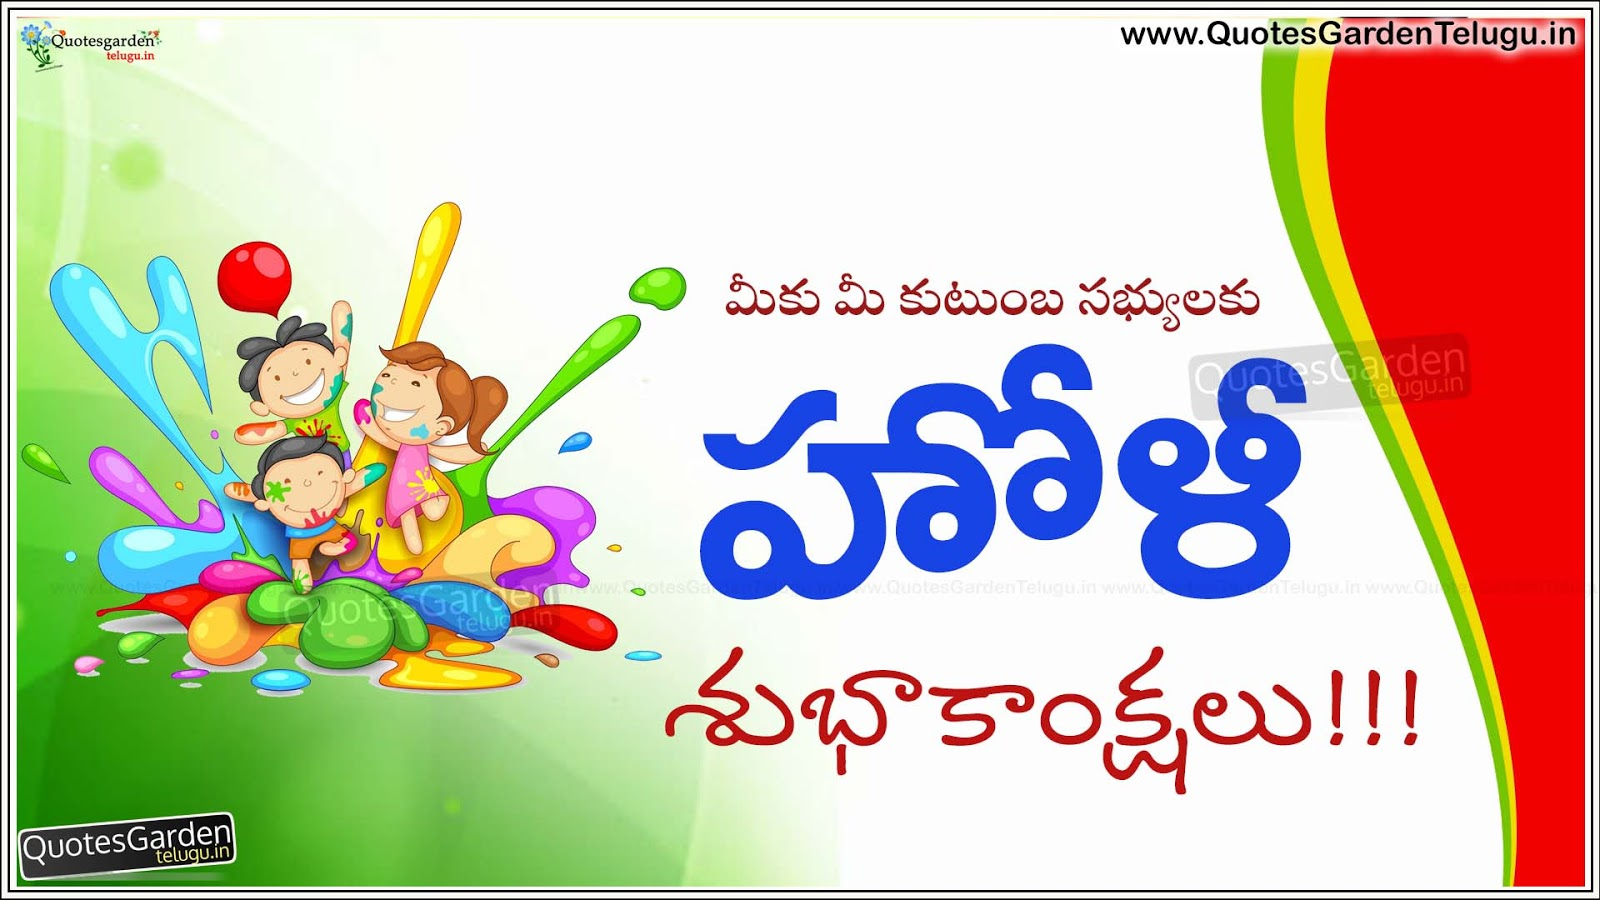 Telugu holi greetings quotations sms messages quotes garden telugu beautiful holi greetings wishes in telugu m4hsunfo